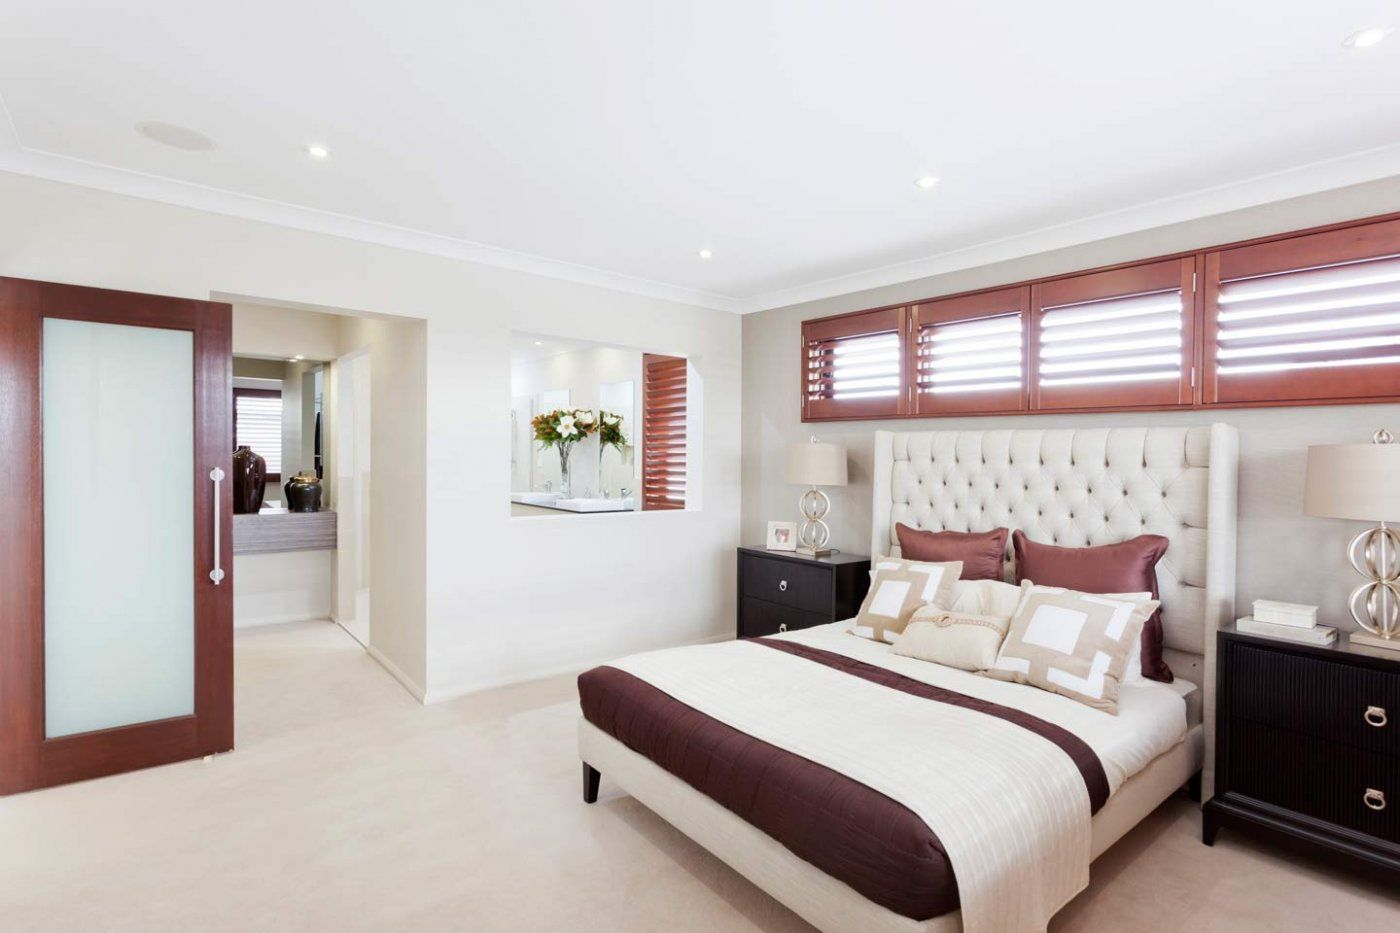 The Master Bedroom From The Huntingdale Design By McDonald Jones Homes.  Exclusive To Canberra.